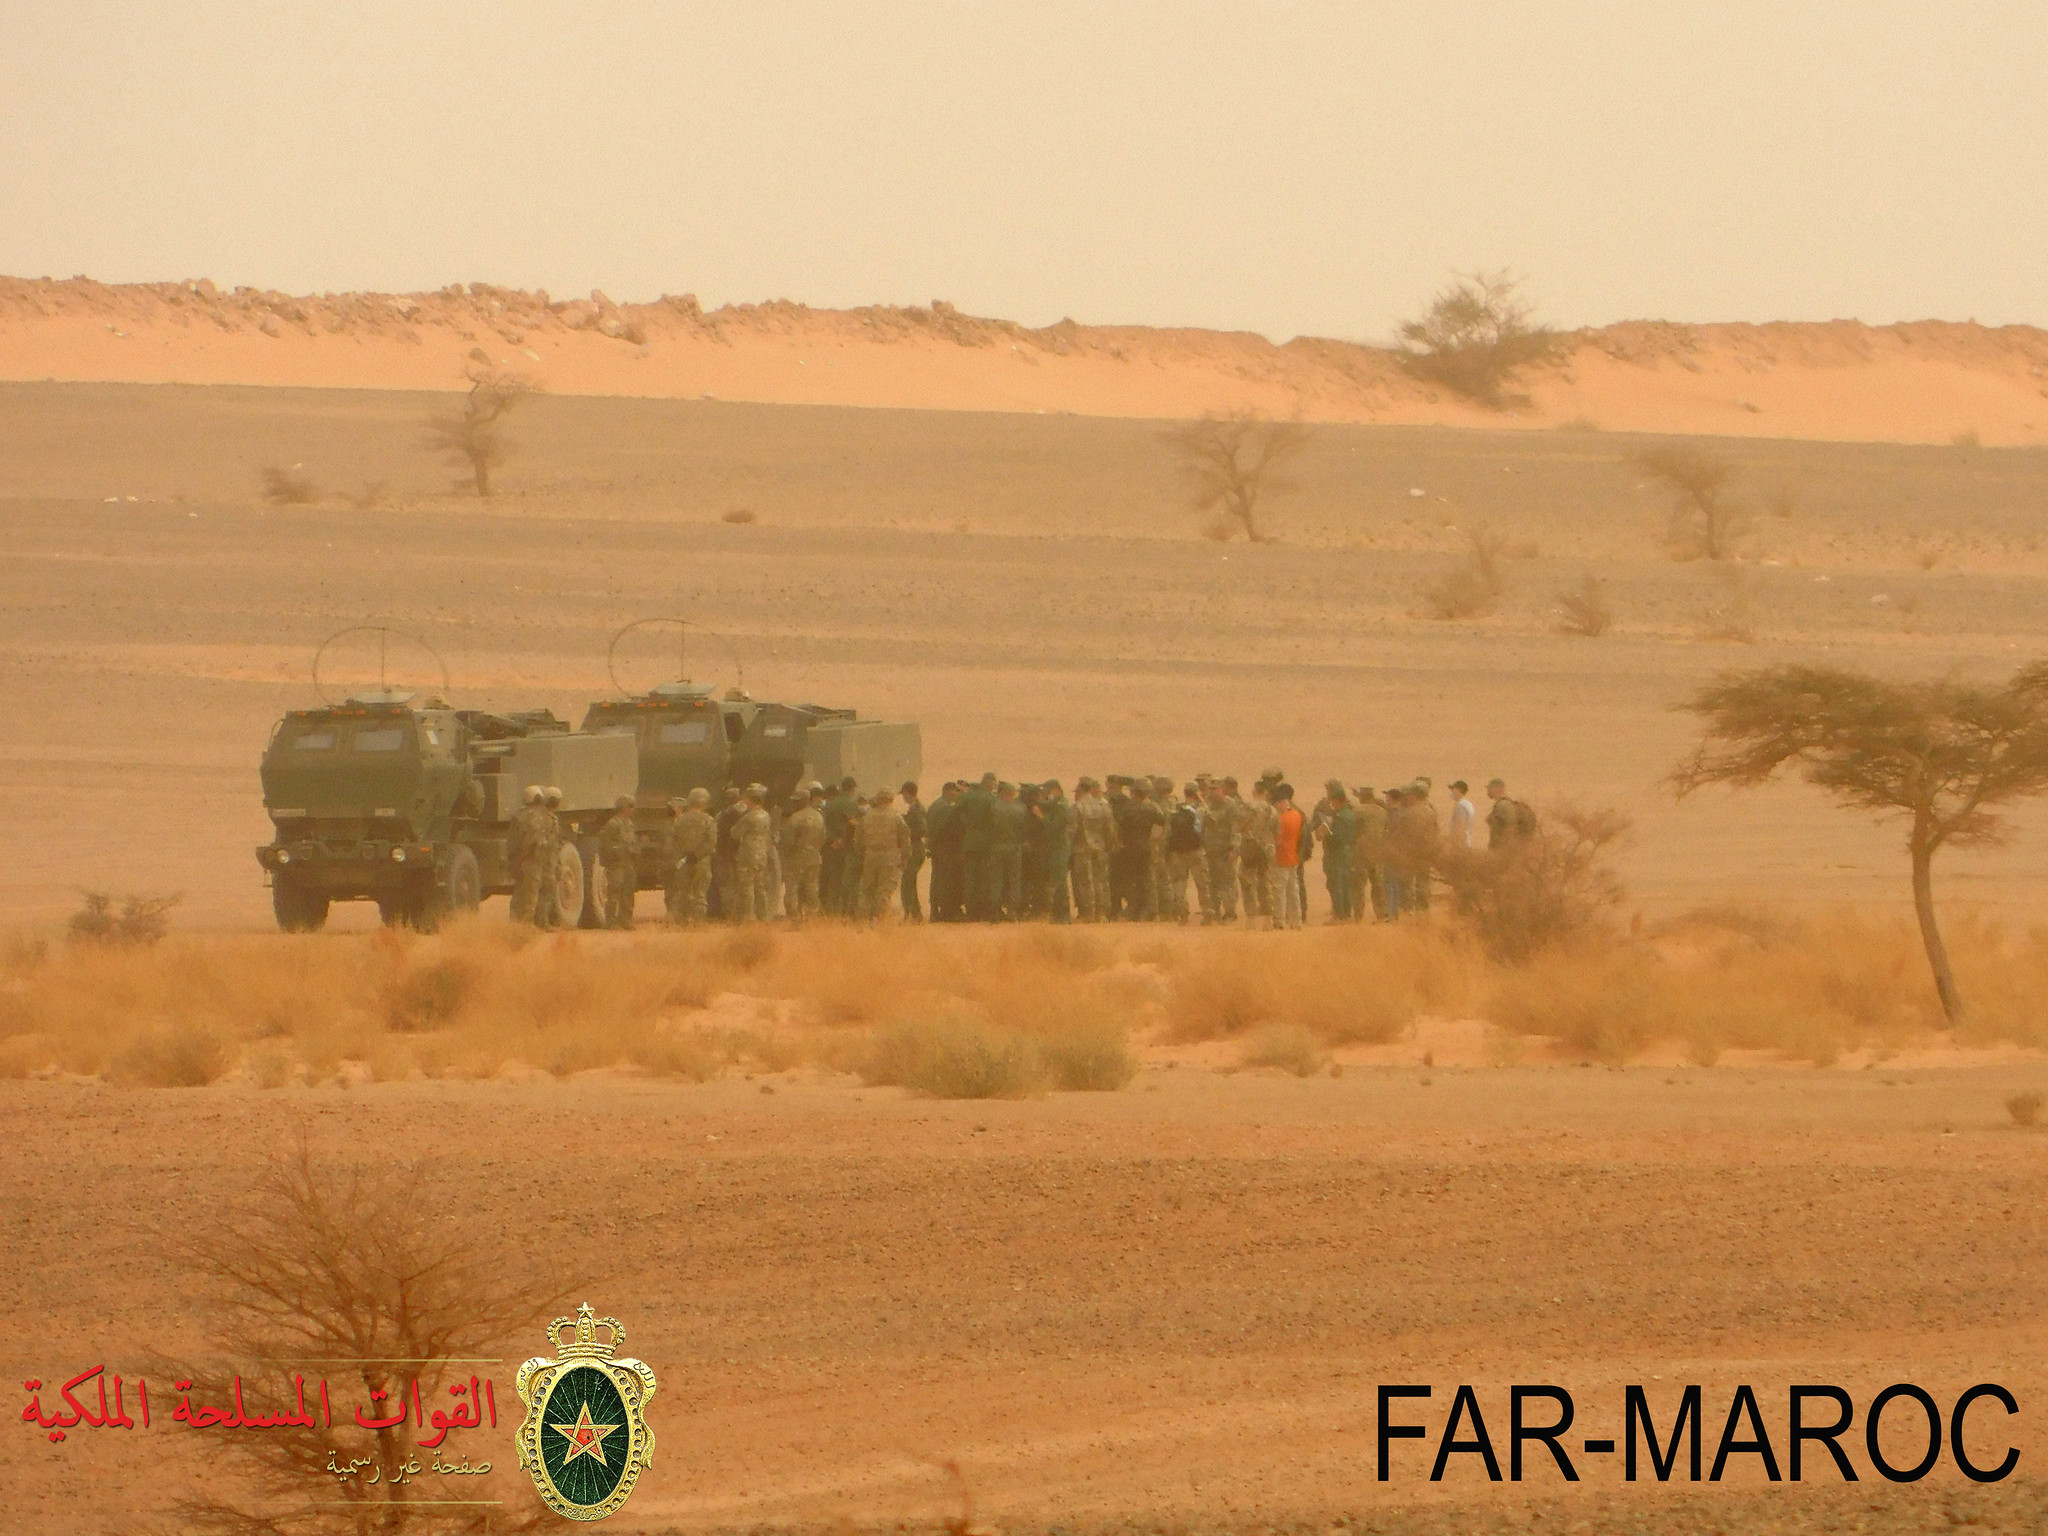 Exercice African Lion 2021 - Page 5 51237481808_3b513a89fa_k_d